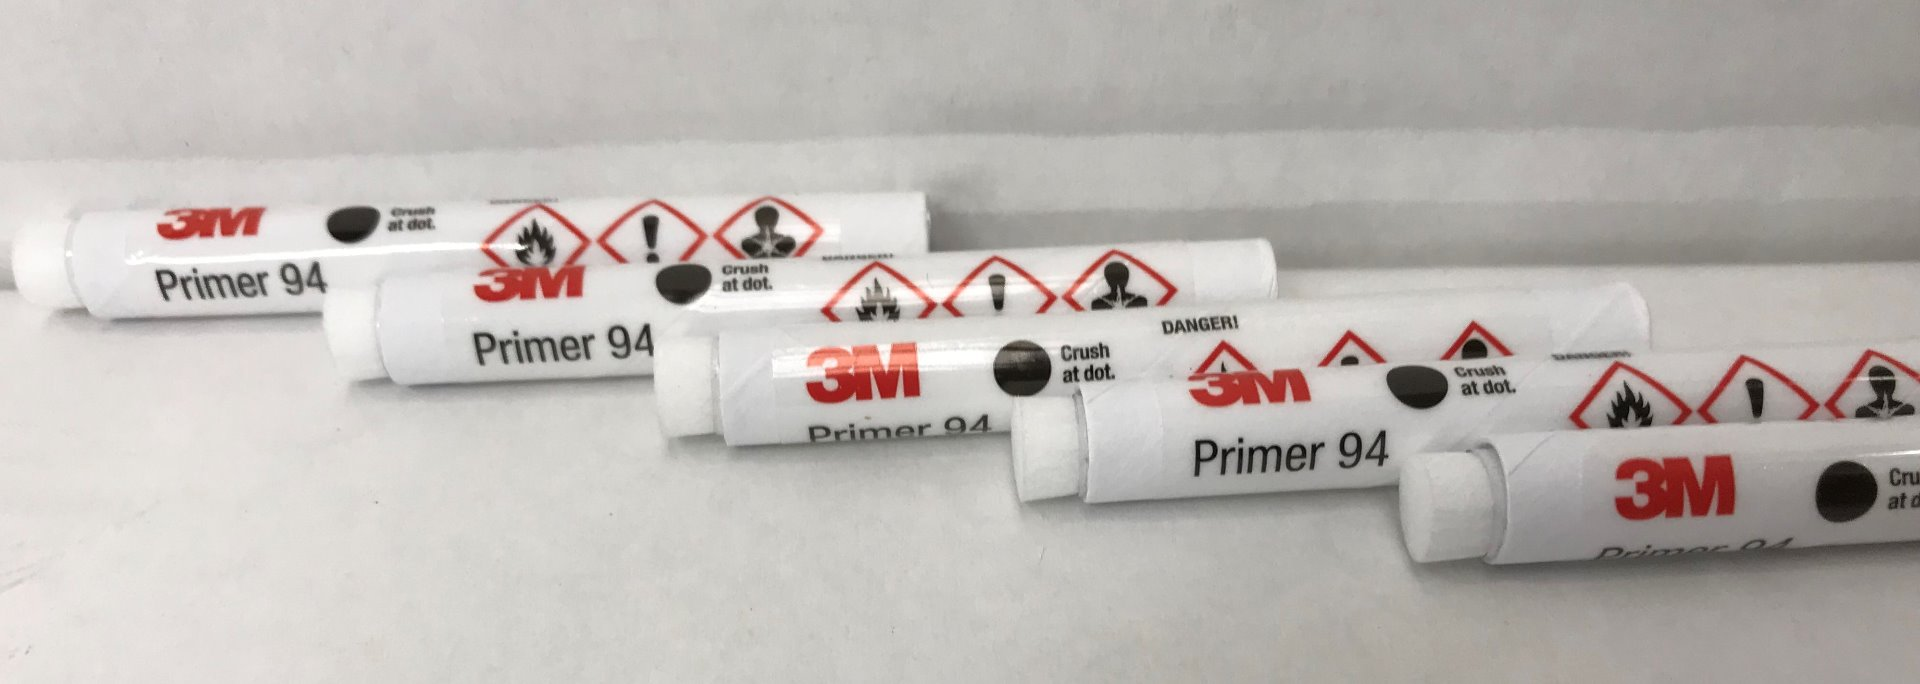 3M Primer 94 Adhesion Promoter